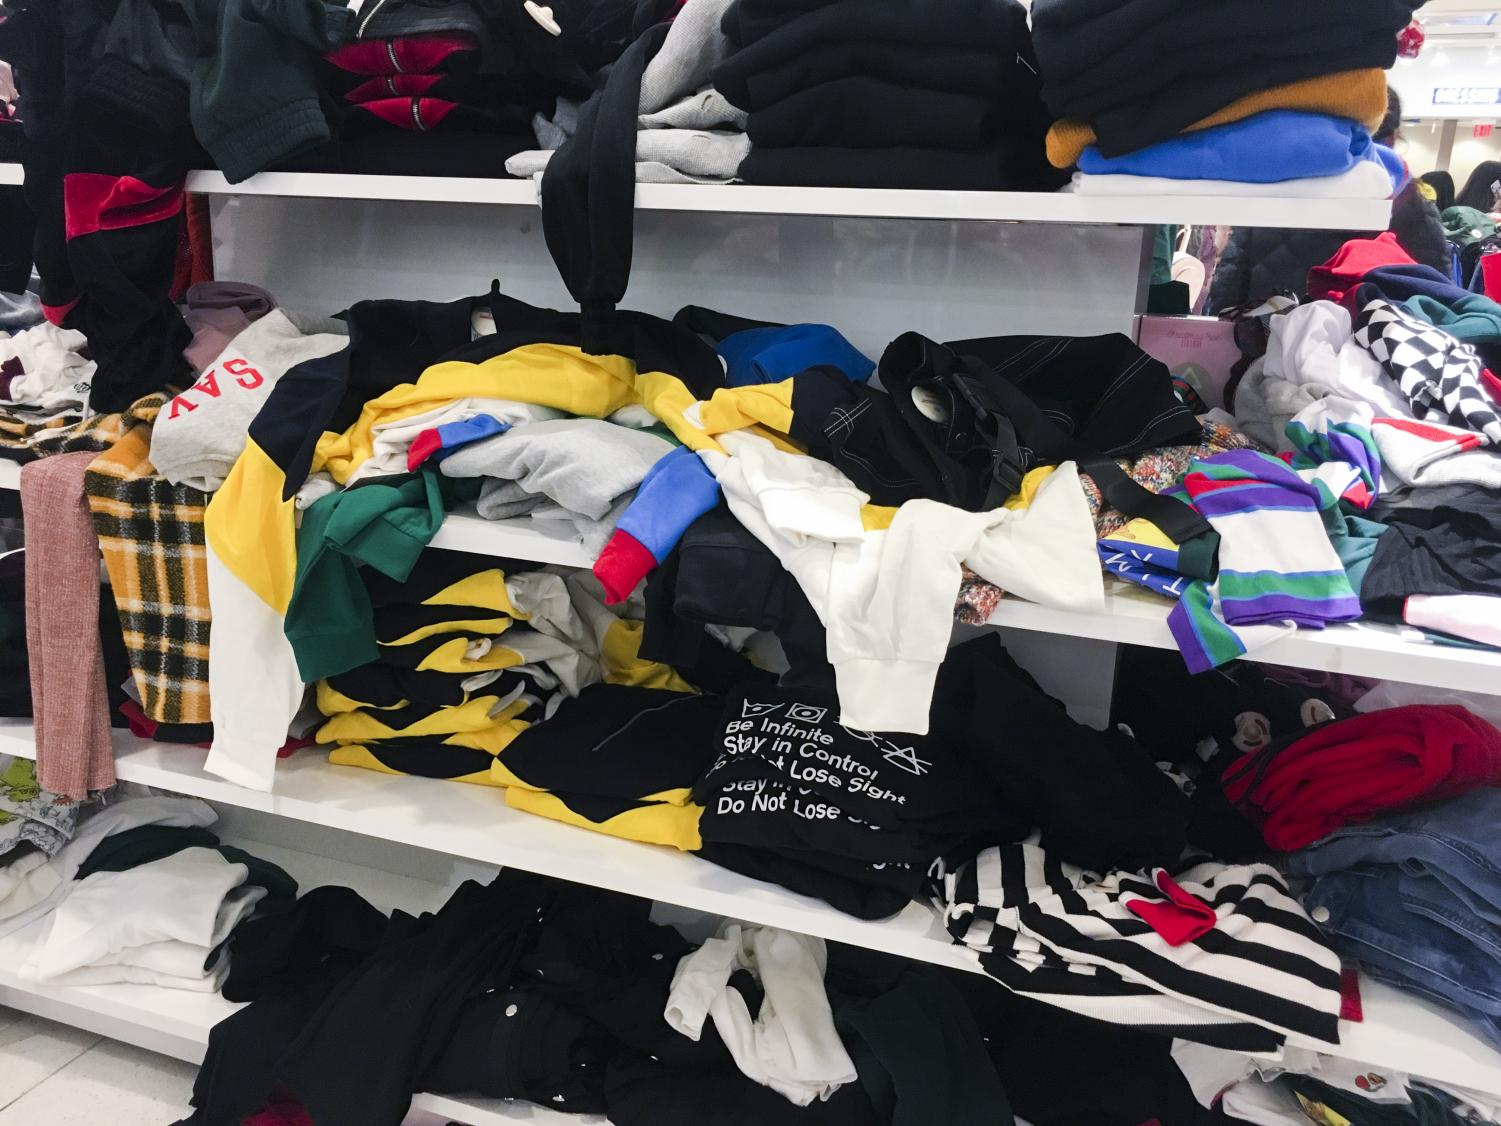 Shelves of sweaters rummaged through in Forever 21 on Black Friday, November 23.